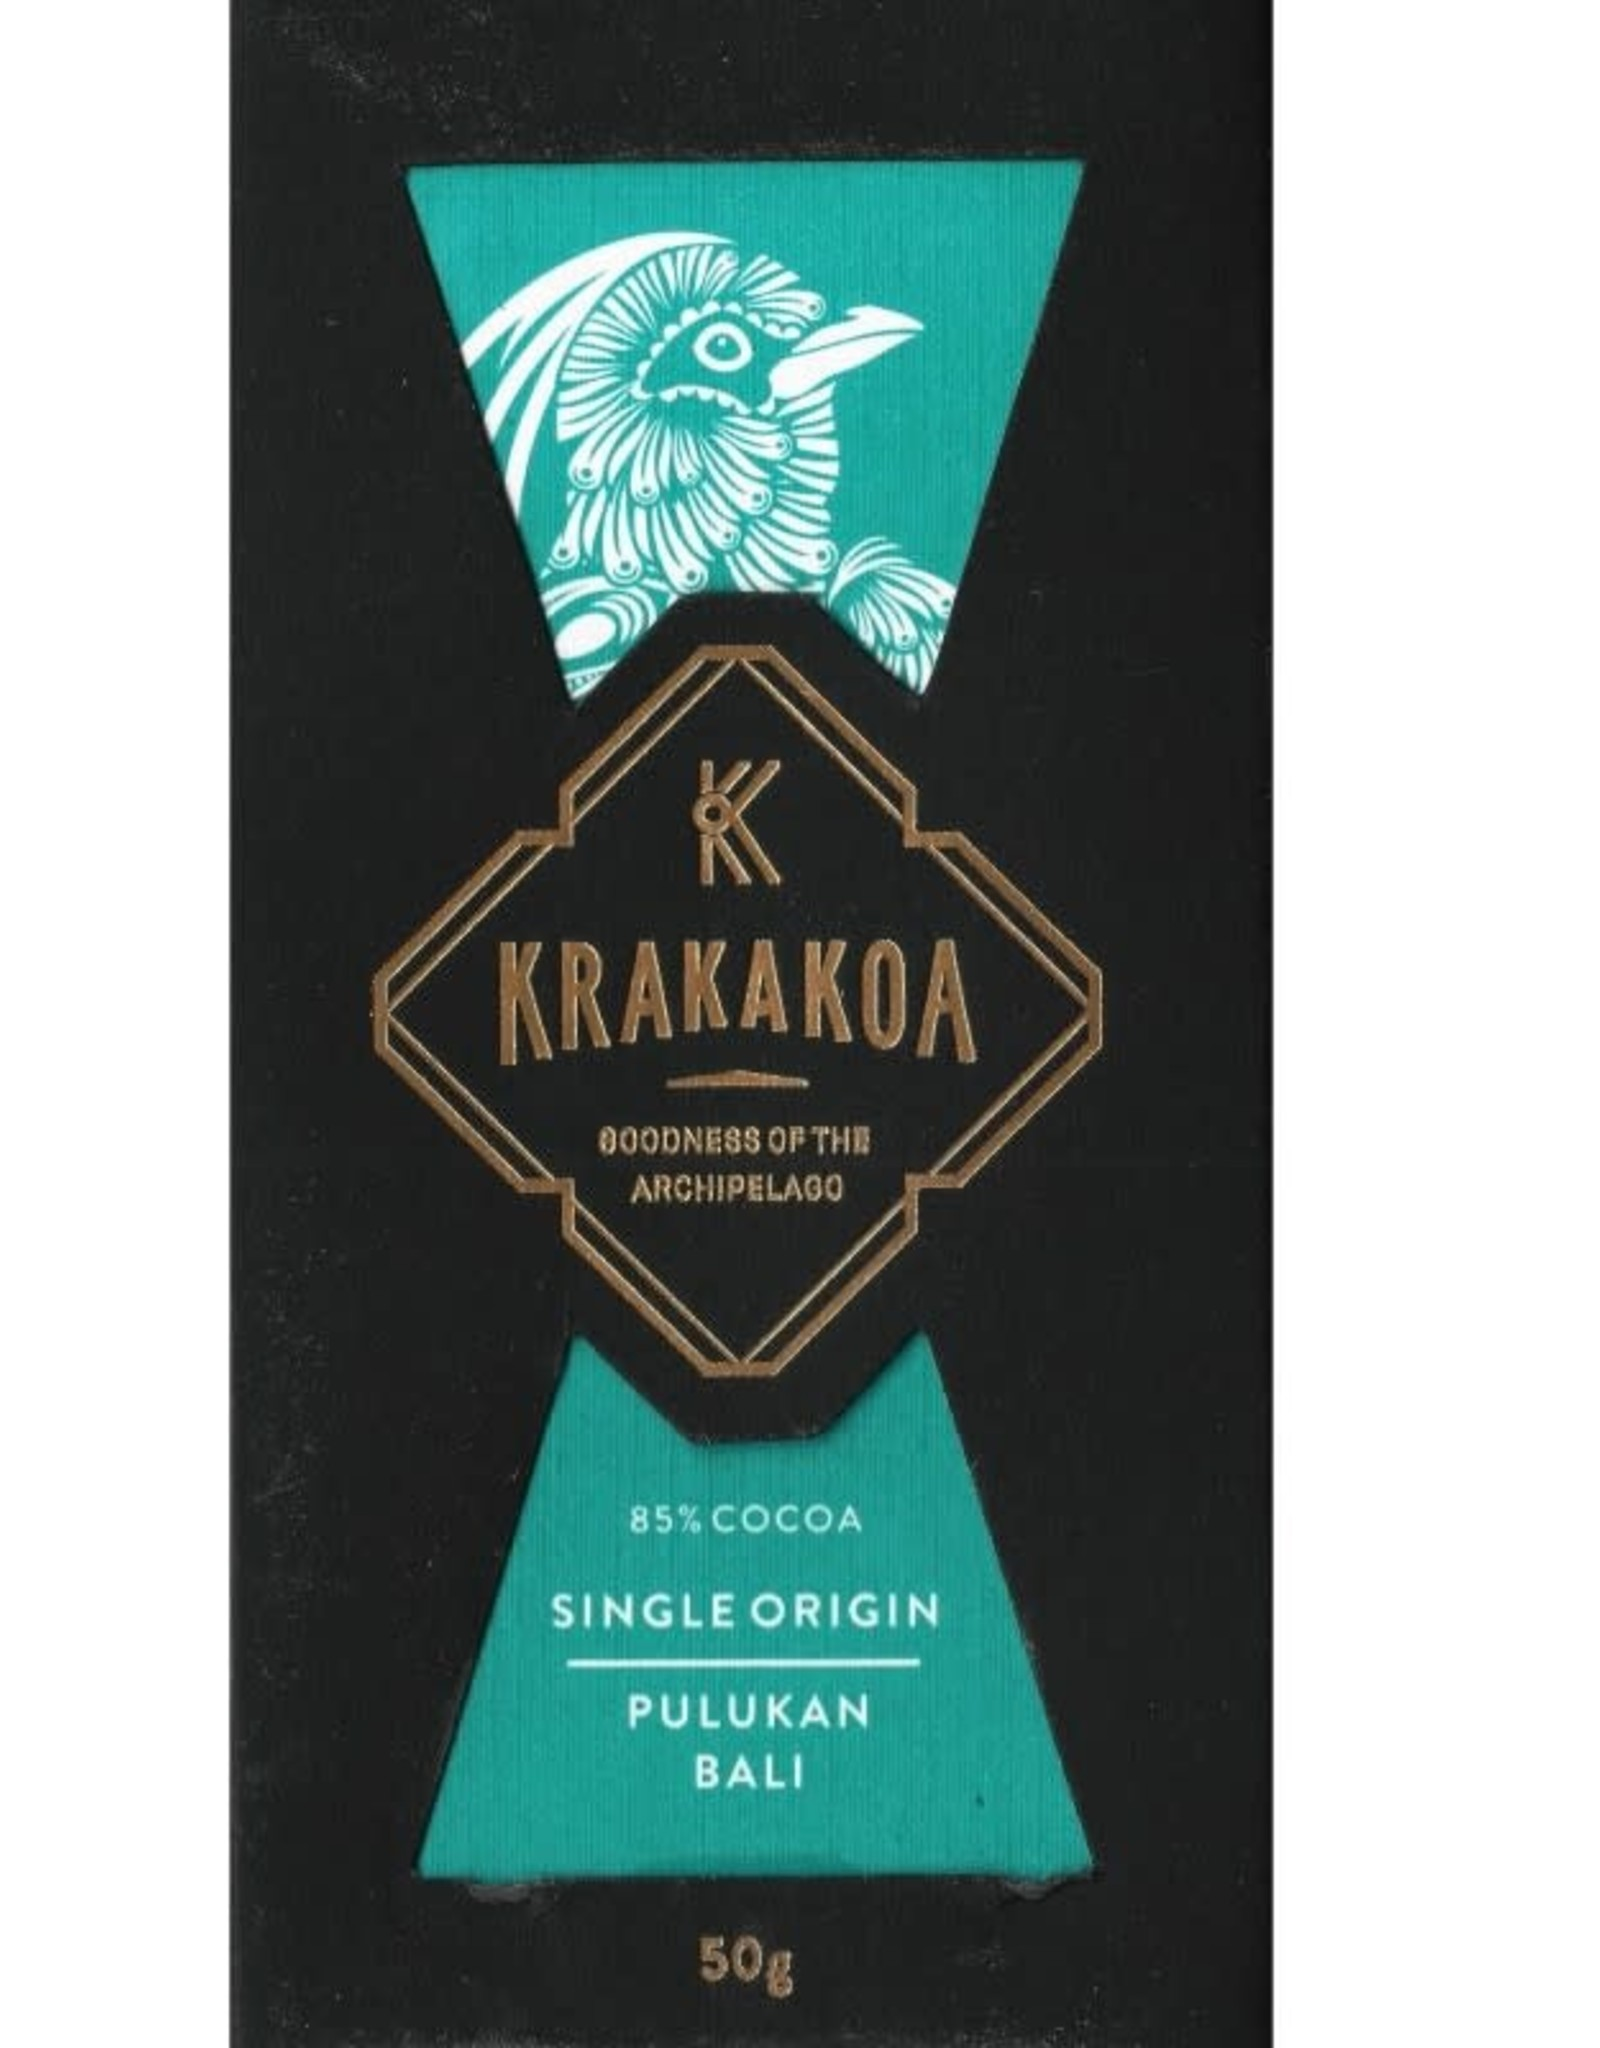 Krakakoa, Indonesia Krakakoa Gift package 3 single origin